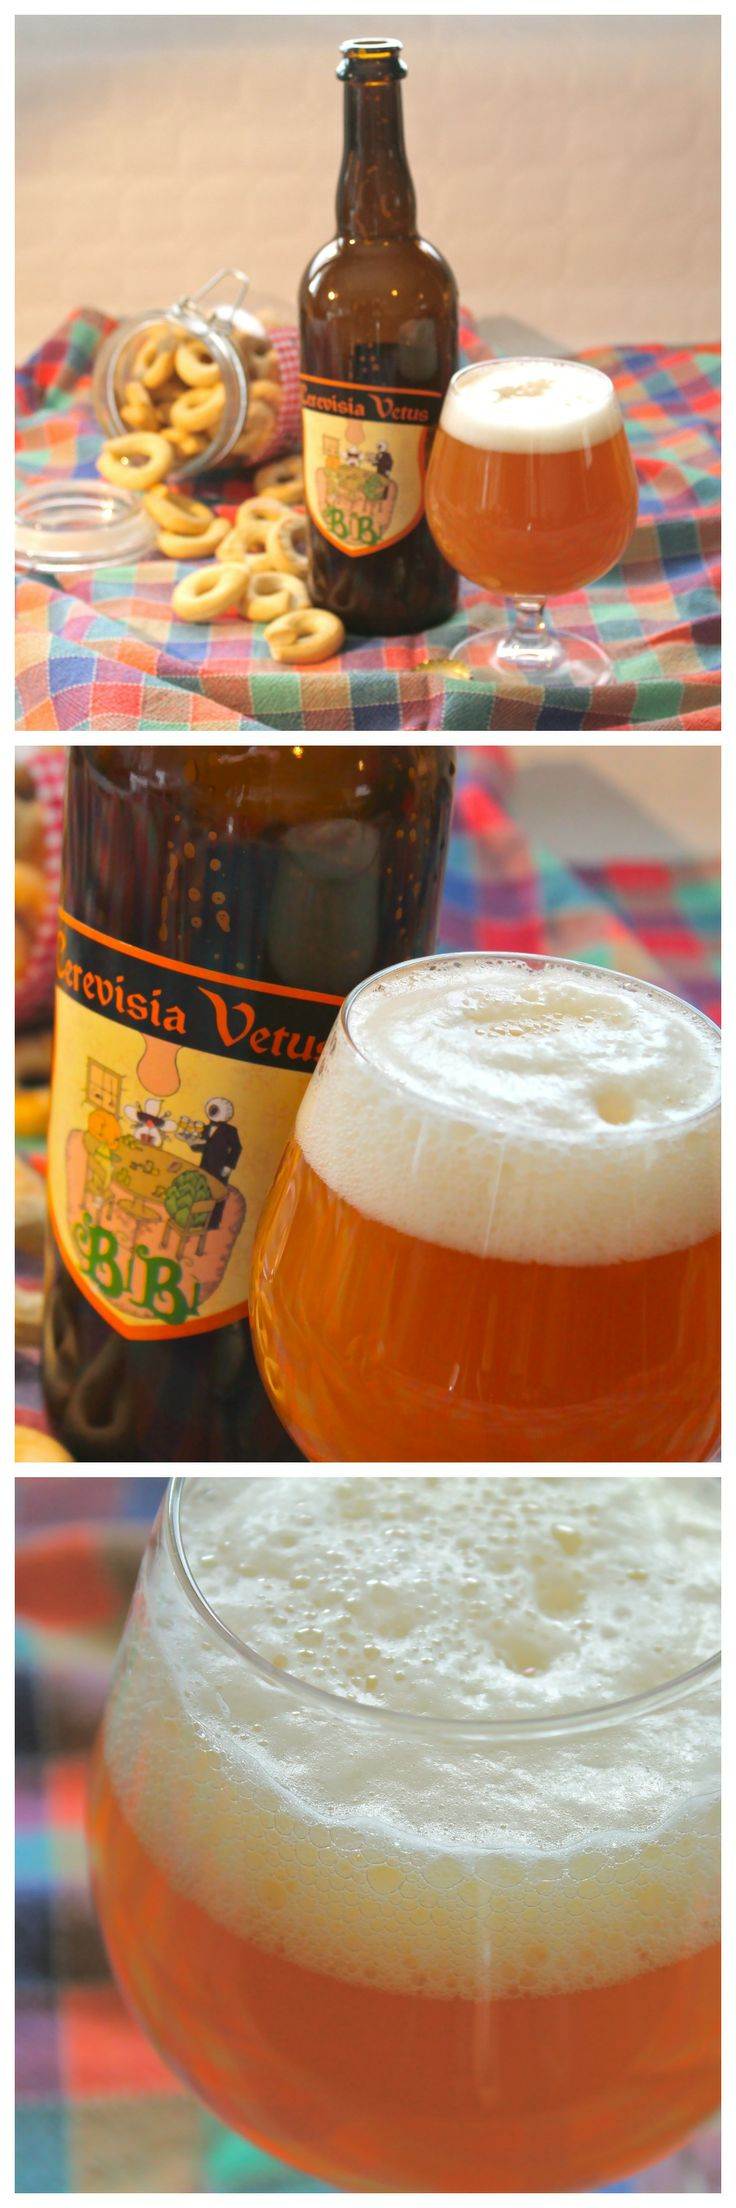 It's spring time. Italian craft beer Belgian inspired - Cerevisia Vetus BiBì - BiBì reminds of springtime orchards, sunny roads and long, romantic walks...Taste it! http://www.gourmetitaly.com/en/products/craft-beers/bibi-cerevisia-vetus-75cl.html